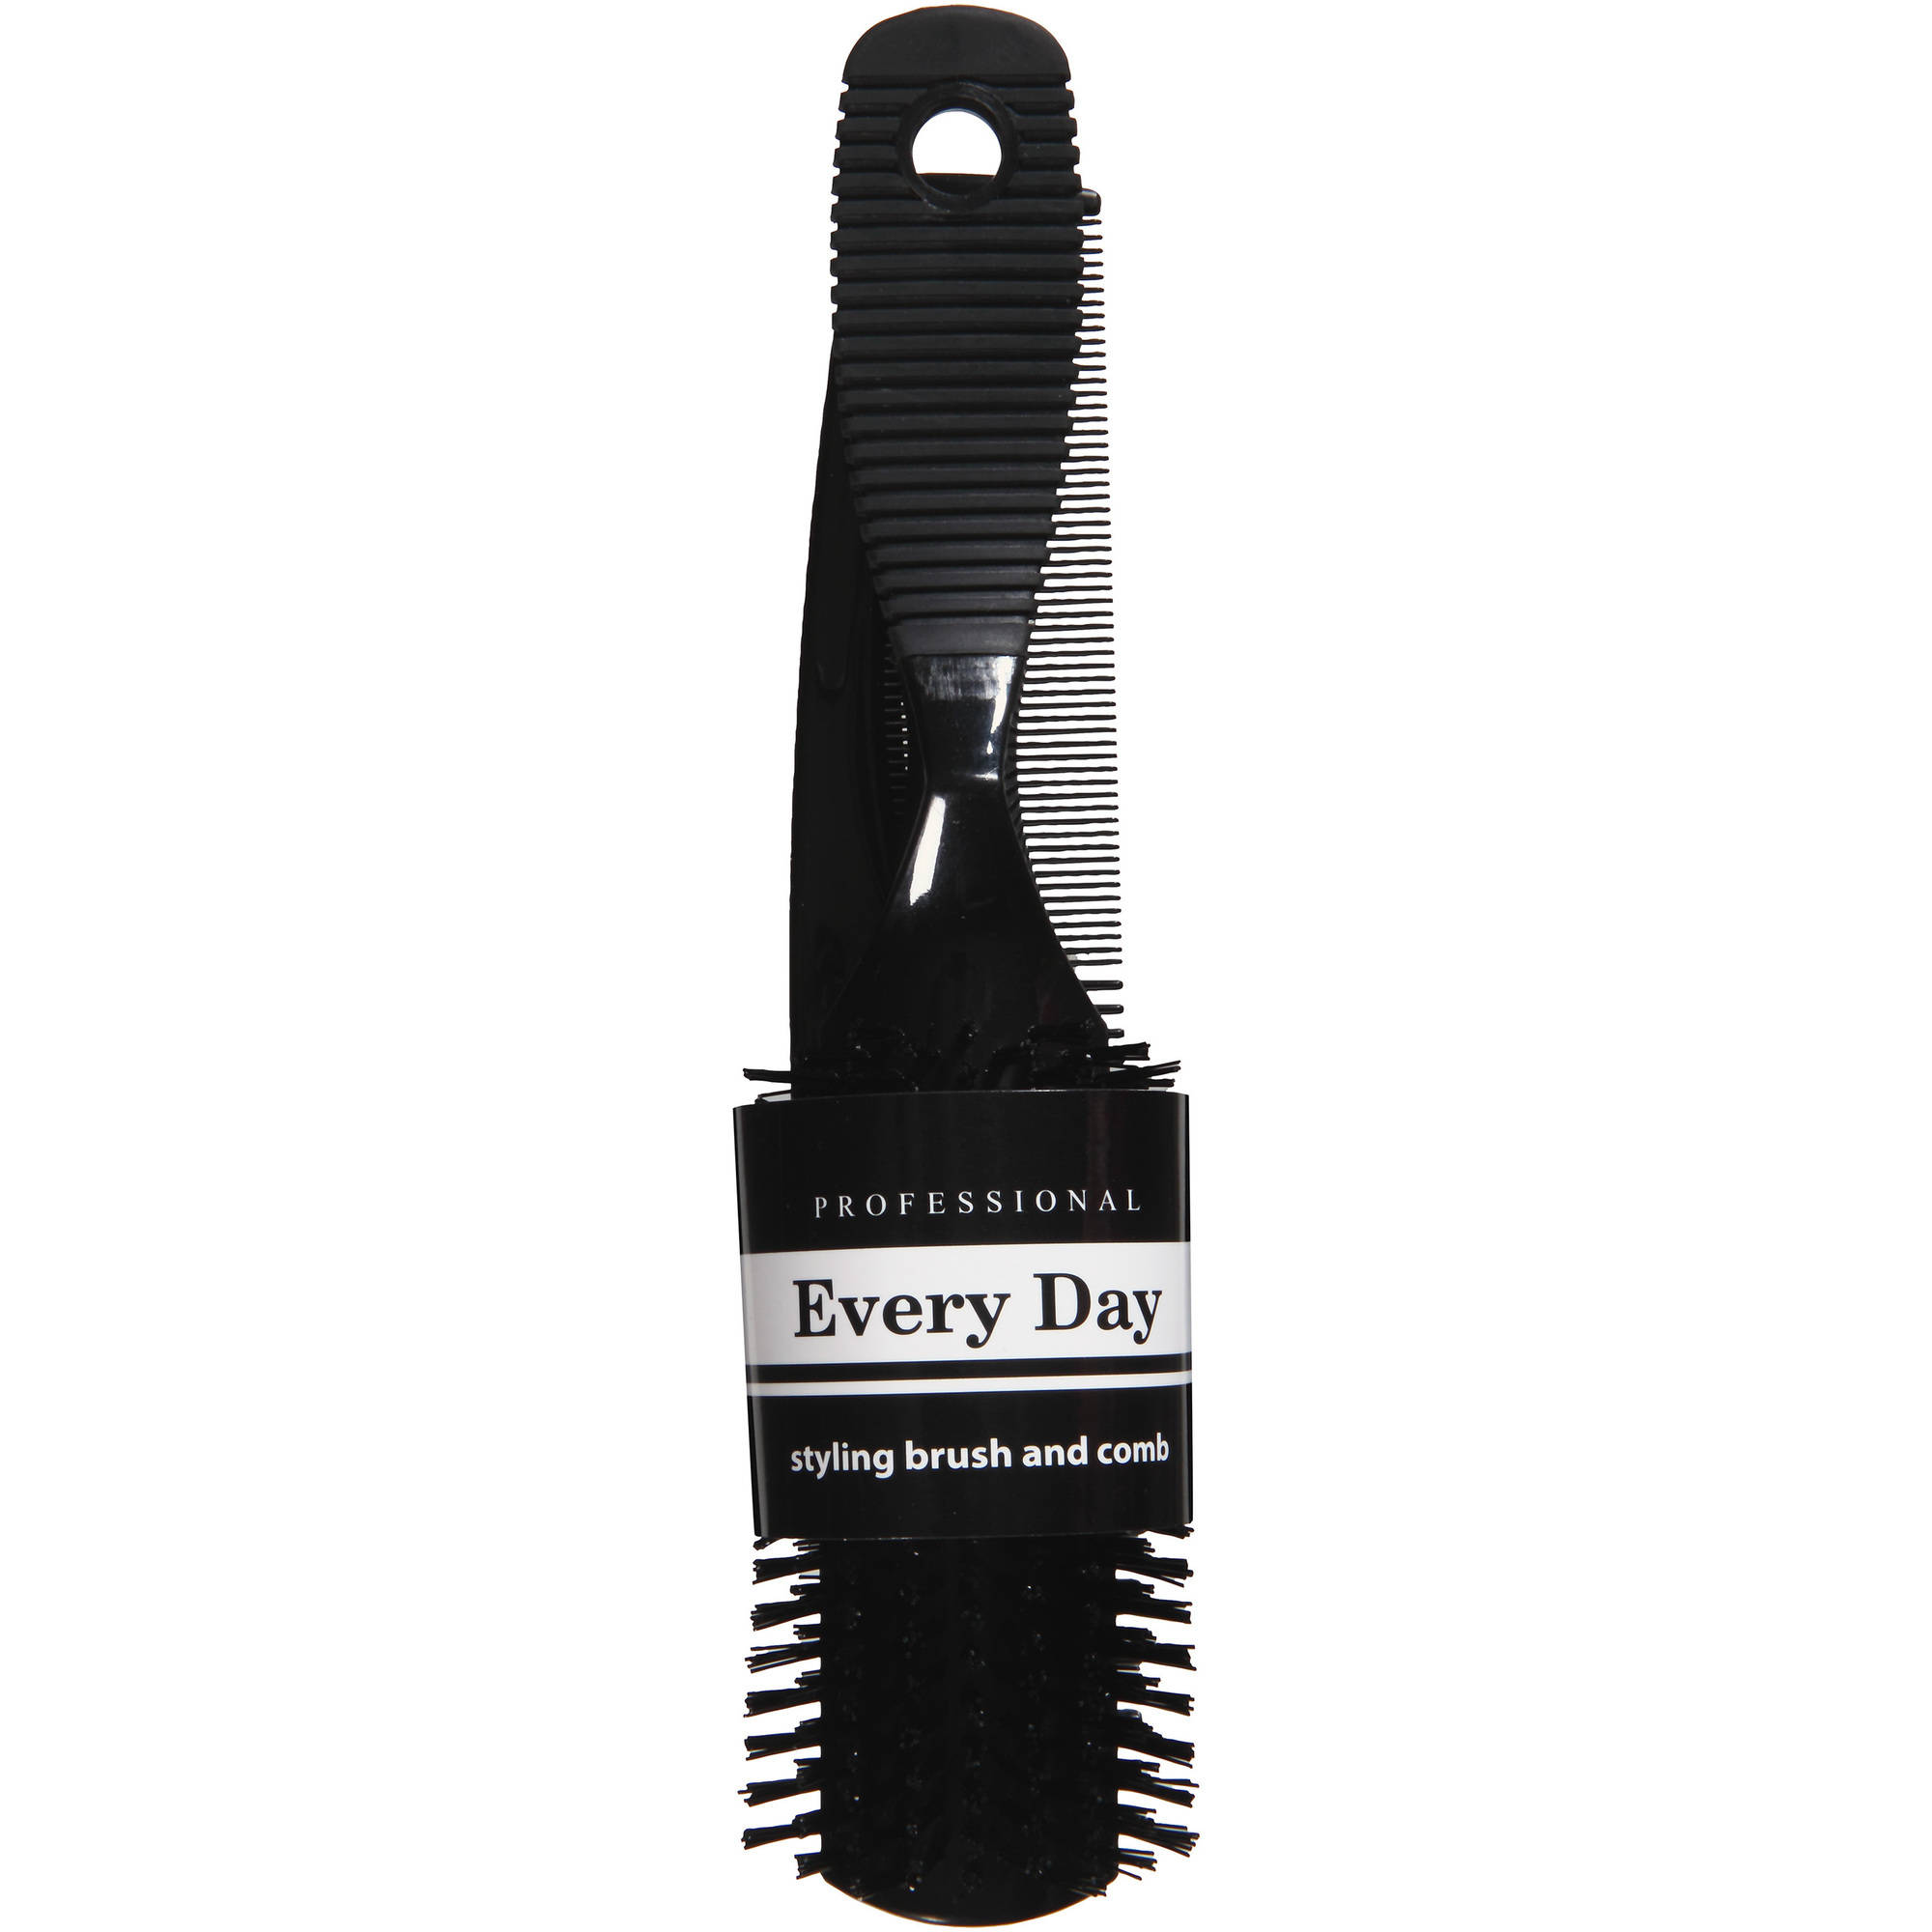 Professional Every Day Styling Brush and Comb, 9103, Black